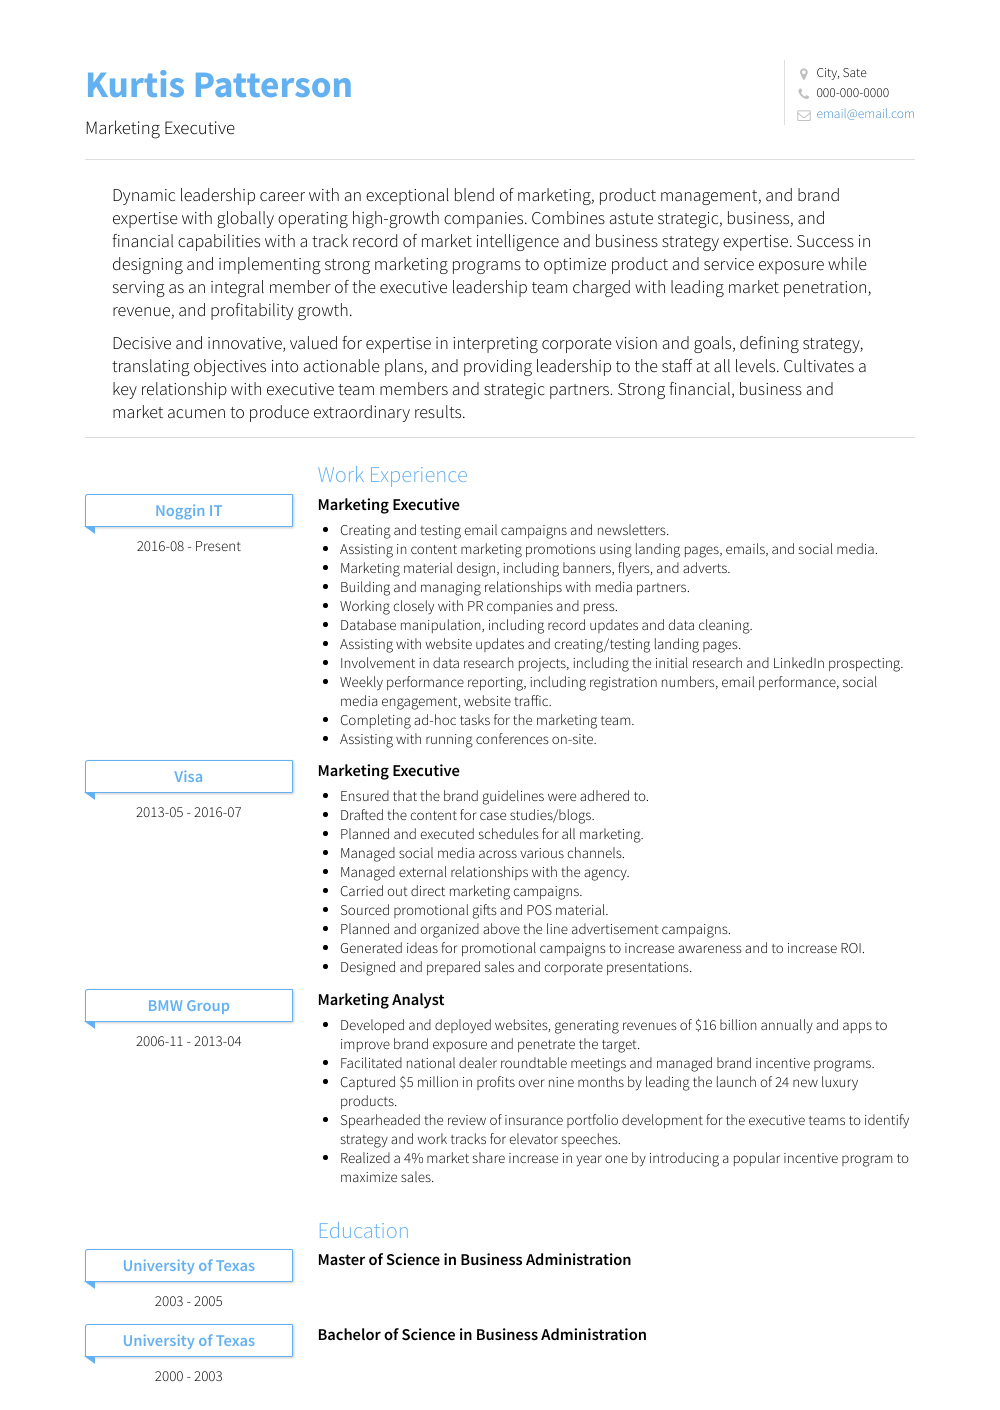 Marketing Executive Resume Sample and Template